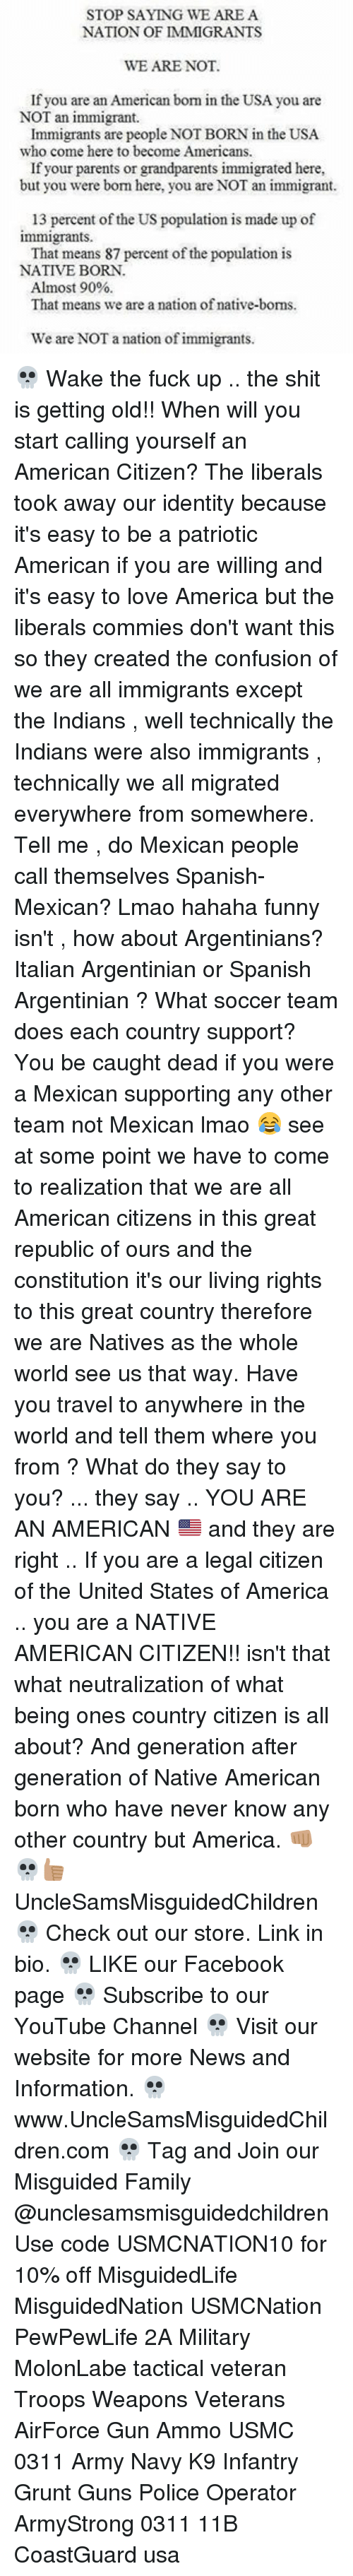 nativism: STOP SAYING WE ARE A  NATION OF IMMIGRANTS  WE ARE NOT.  If you are an American born in the USA you are  NOT an immigrant.  Immigrants are people NOTBORN in the USA.  who come here to become Americans.  If your parents or grandparents immigrated here,  but you were bom here, you are NOT an immigrant.  13 percent of the US population is made up of  immigrants.  That means 87 percent of the population is  NATIVE BORN.  Almost 90%  That means we are a nation of native-boms.  We are NOT a nation of immigrants. 💀 Wake the fuck up .. the shit is getting old!! When will you start calling yourself an American Citizen? The liberals took away our identity because it's easy to be a patriotic American if you are willing and it's easy to love America but the liberals commies don't want this so they created the confusion of we are all immigrants except the Indians , well technically the Indians were also immigrants , technically we all migrated everywhere from somewhere. Tell me , do Mexican people call themselves Spanish-Mexican? Lmao hahaha funny isn't , how about Argentinians? Italian Argentinian or Spanish Argentinian ? What soccer team does each country support? You be caught dead if you were a Mexican supporting any other team not Mexican lmao 😂 see at some point we have to come to realization that we are all American citizens in this great republic of ours and the constitution it's our living rights to this great country therefore we are Natives as the whole world see us that way. Have you travel to anywhere in the world and tell them where you from ? What do they say to you? ... they say .. YOU ARE AN AMERICAN 🇺🇸 and they are right .. If you are a legal citizen of the United States of America .. you are a NATIVE AMERICAN CITIZEN!! isn't that what neutralization of what being ones country citizen is all about? And generation after generation of Native American born who have never know any other country but America. 👊🏽💀👍🏽 UncleSamsMisguidedChildren 💀 Check out our